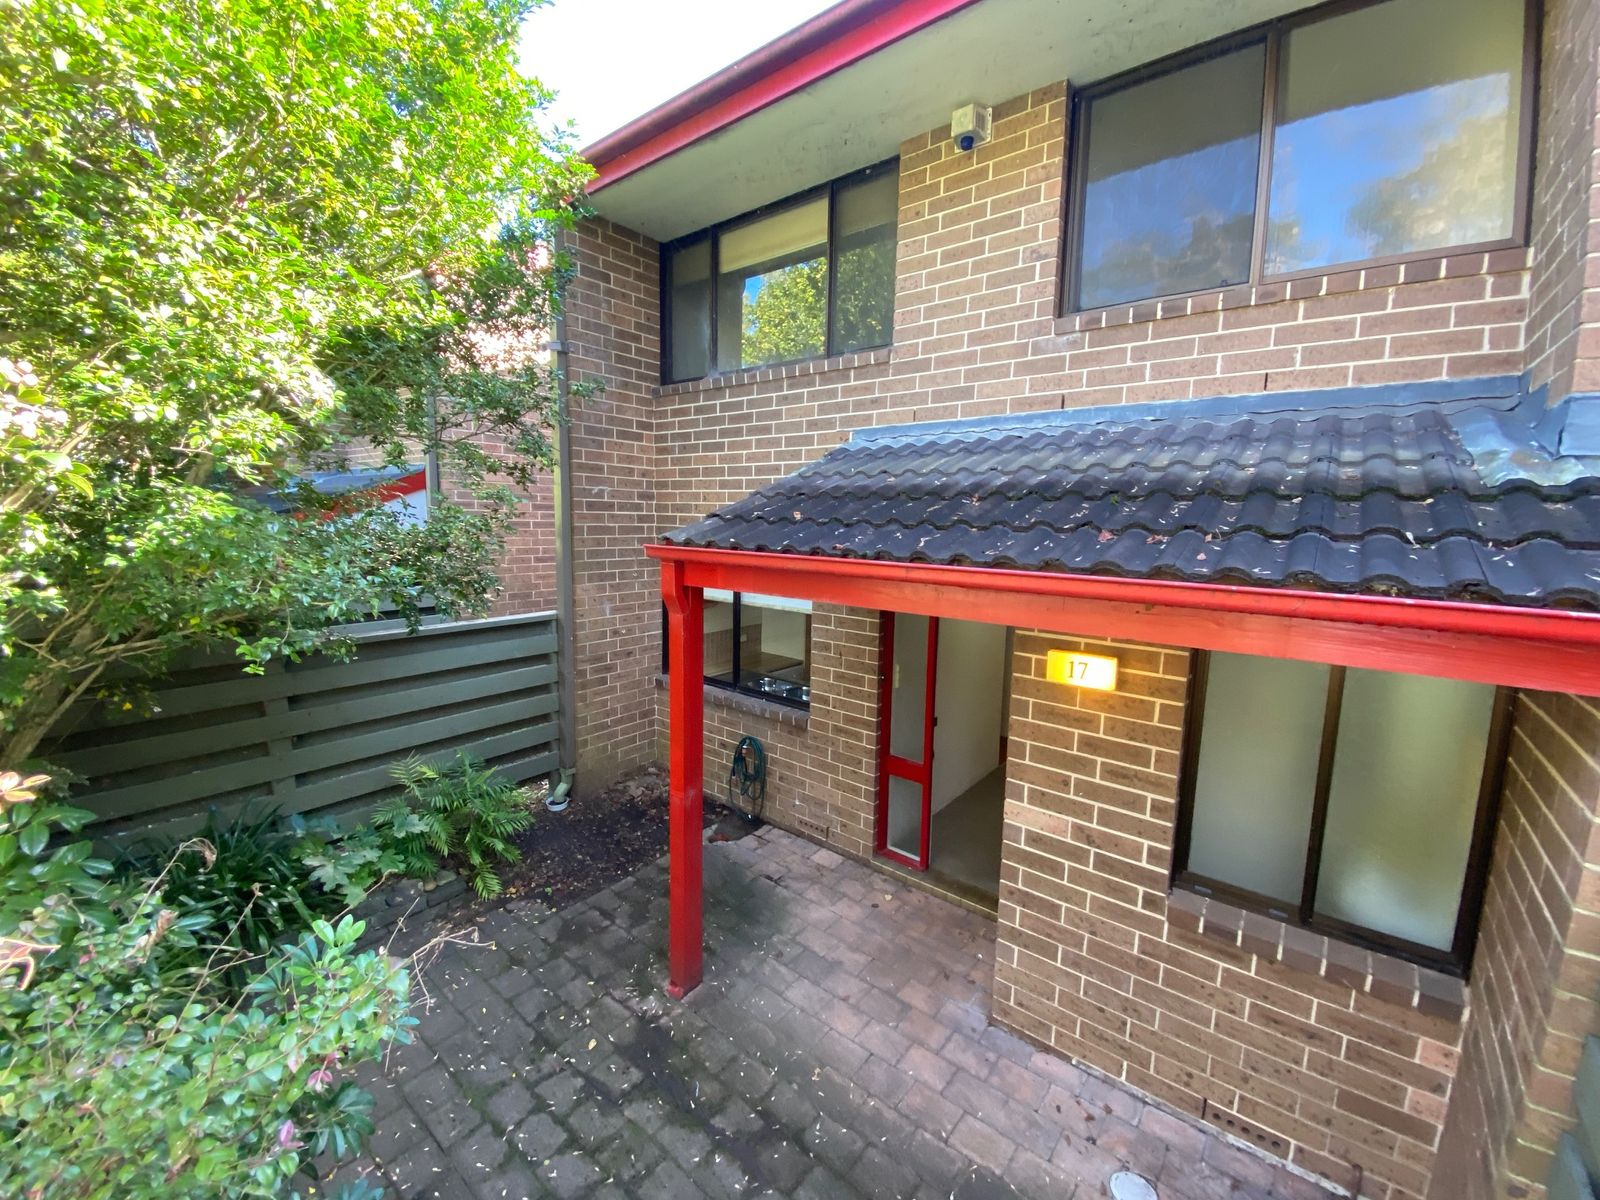 17/8 Tuckwell Place, Macquarie Park, NSW 2113